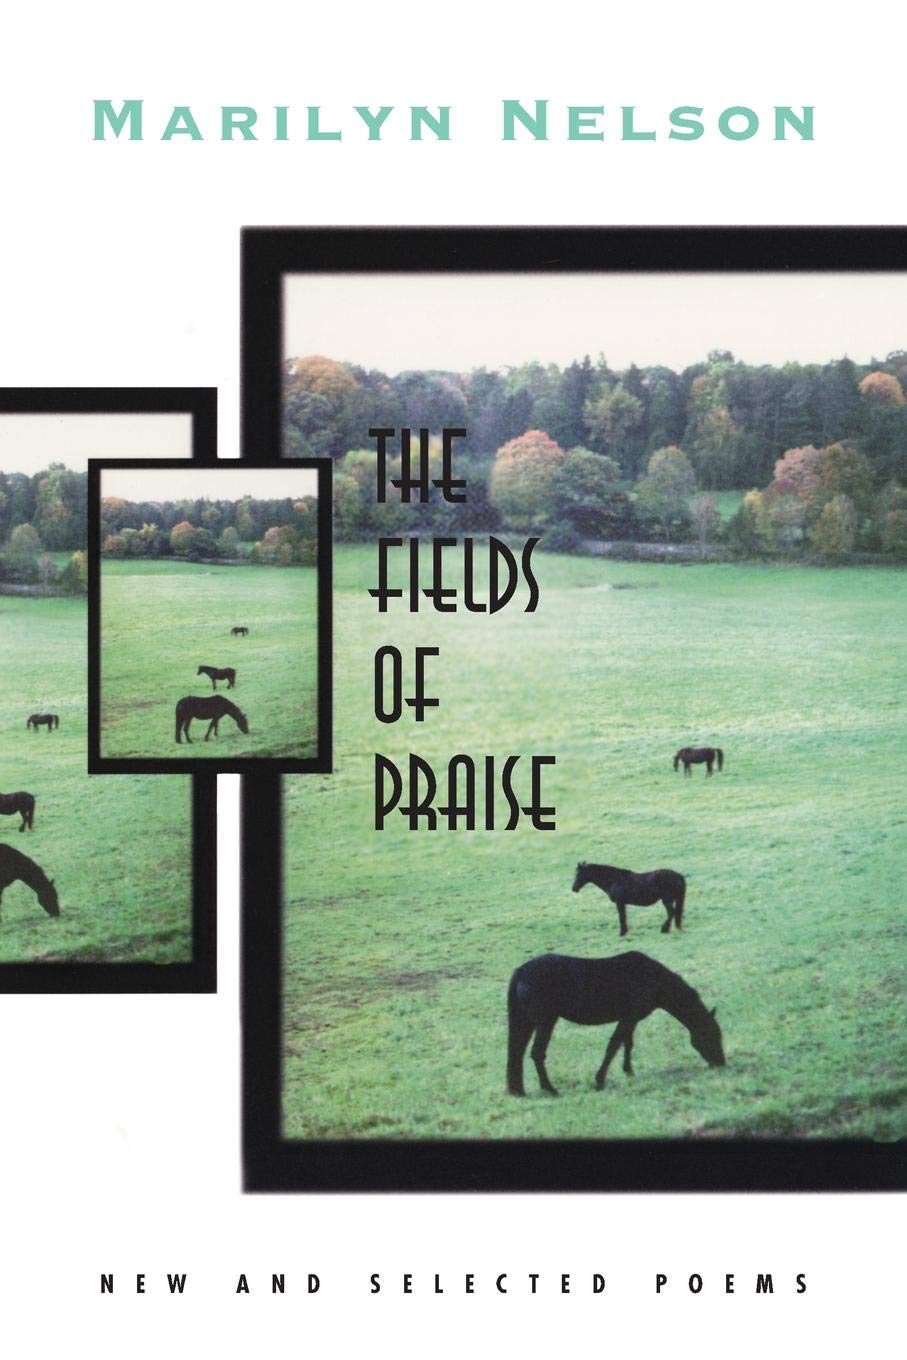 The Fields of Praise: New and Selected Poems: Marilyn Nelson